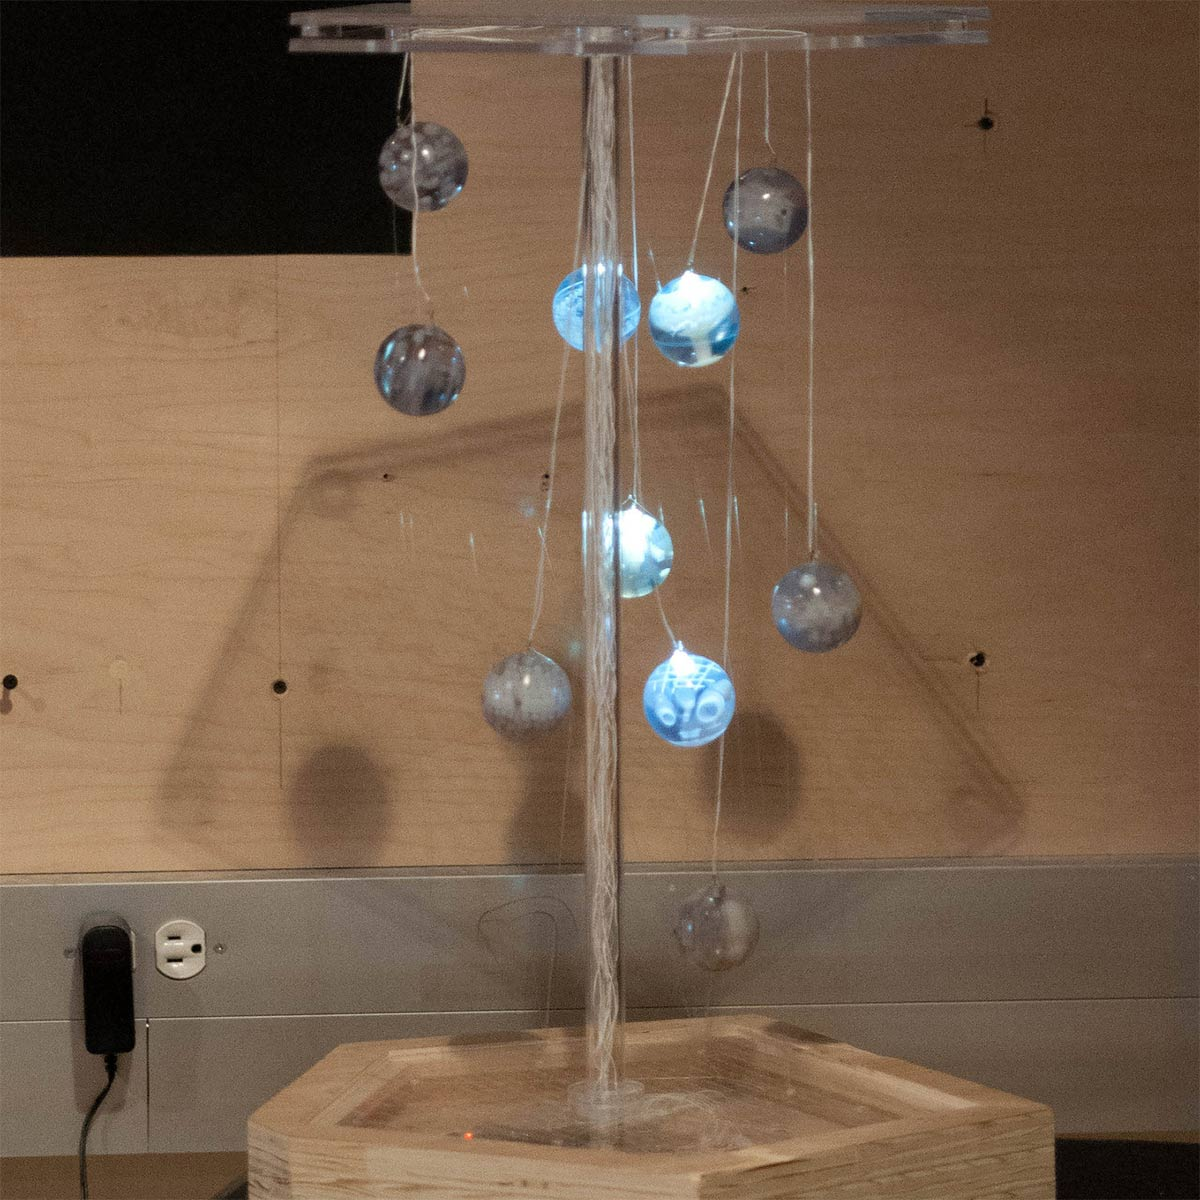 marbles lit up and suspended